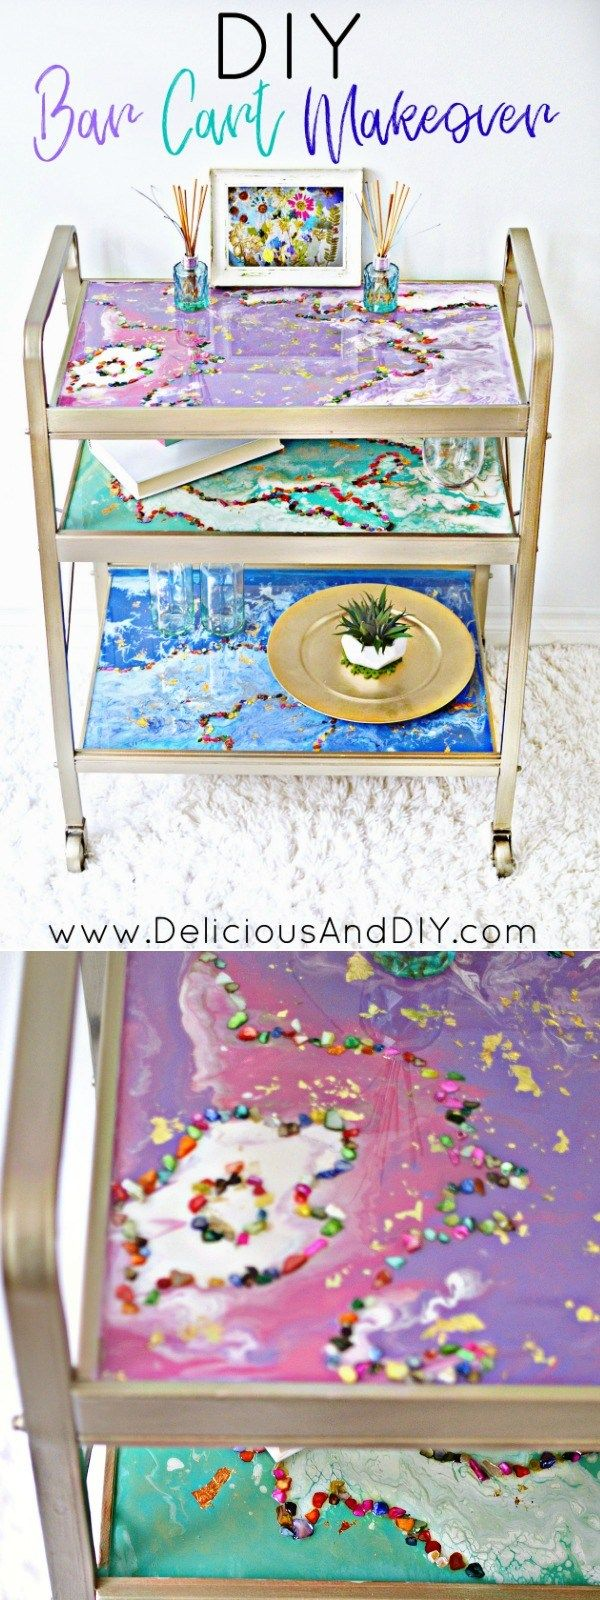 The 25+ best Resin furniture ideas on Pinterest | DIY resin ...